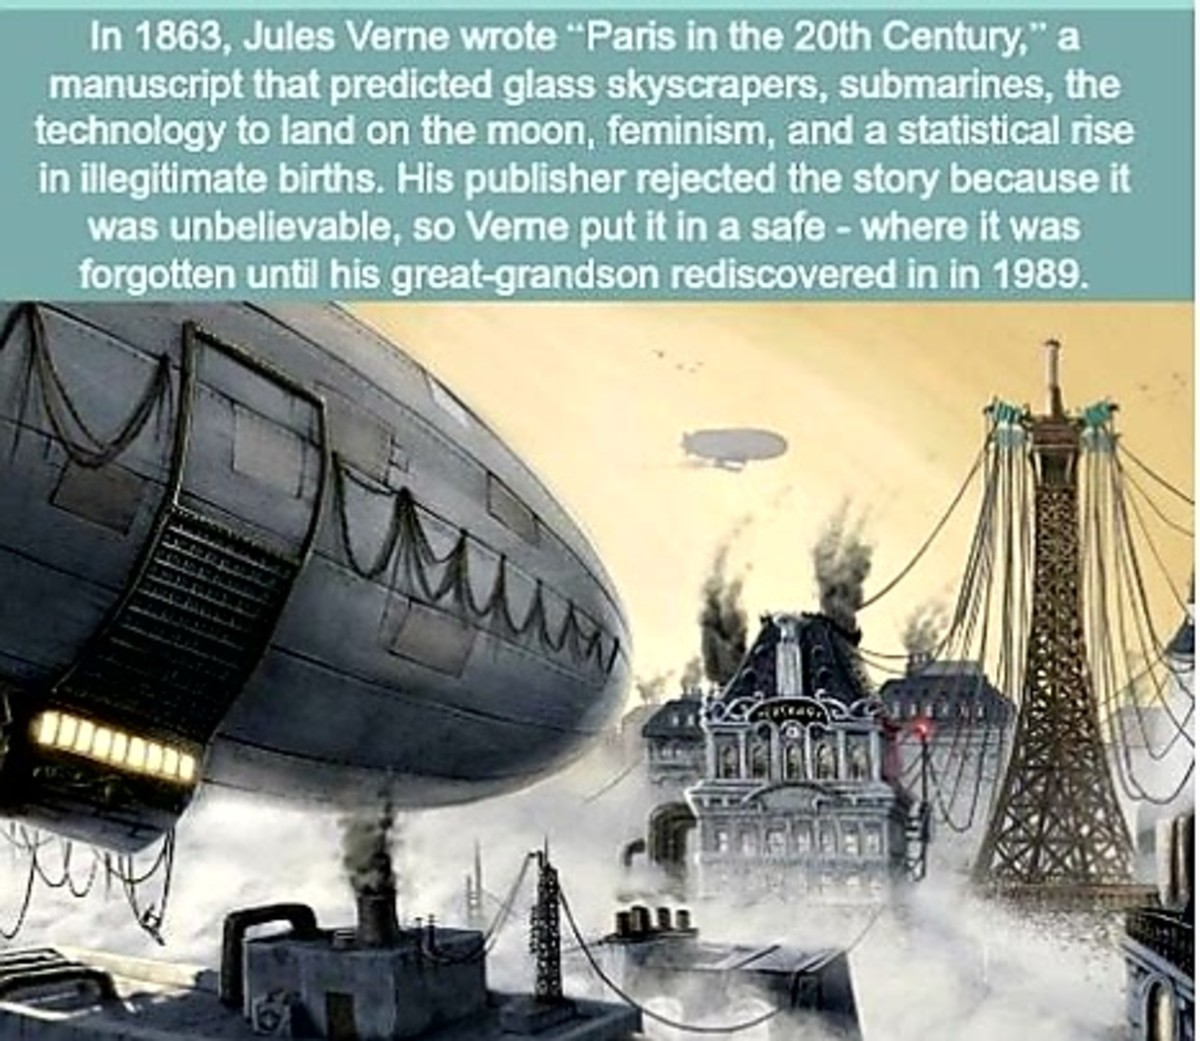 Prediction of Paris in 20th Century. .. The book is so vague though. Saying he predicted it is like me 'predicting' there will be more effecient computers in the future. Exert: Arriving in Paris, as h